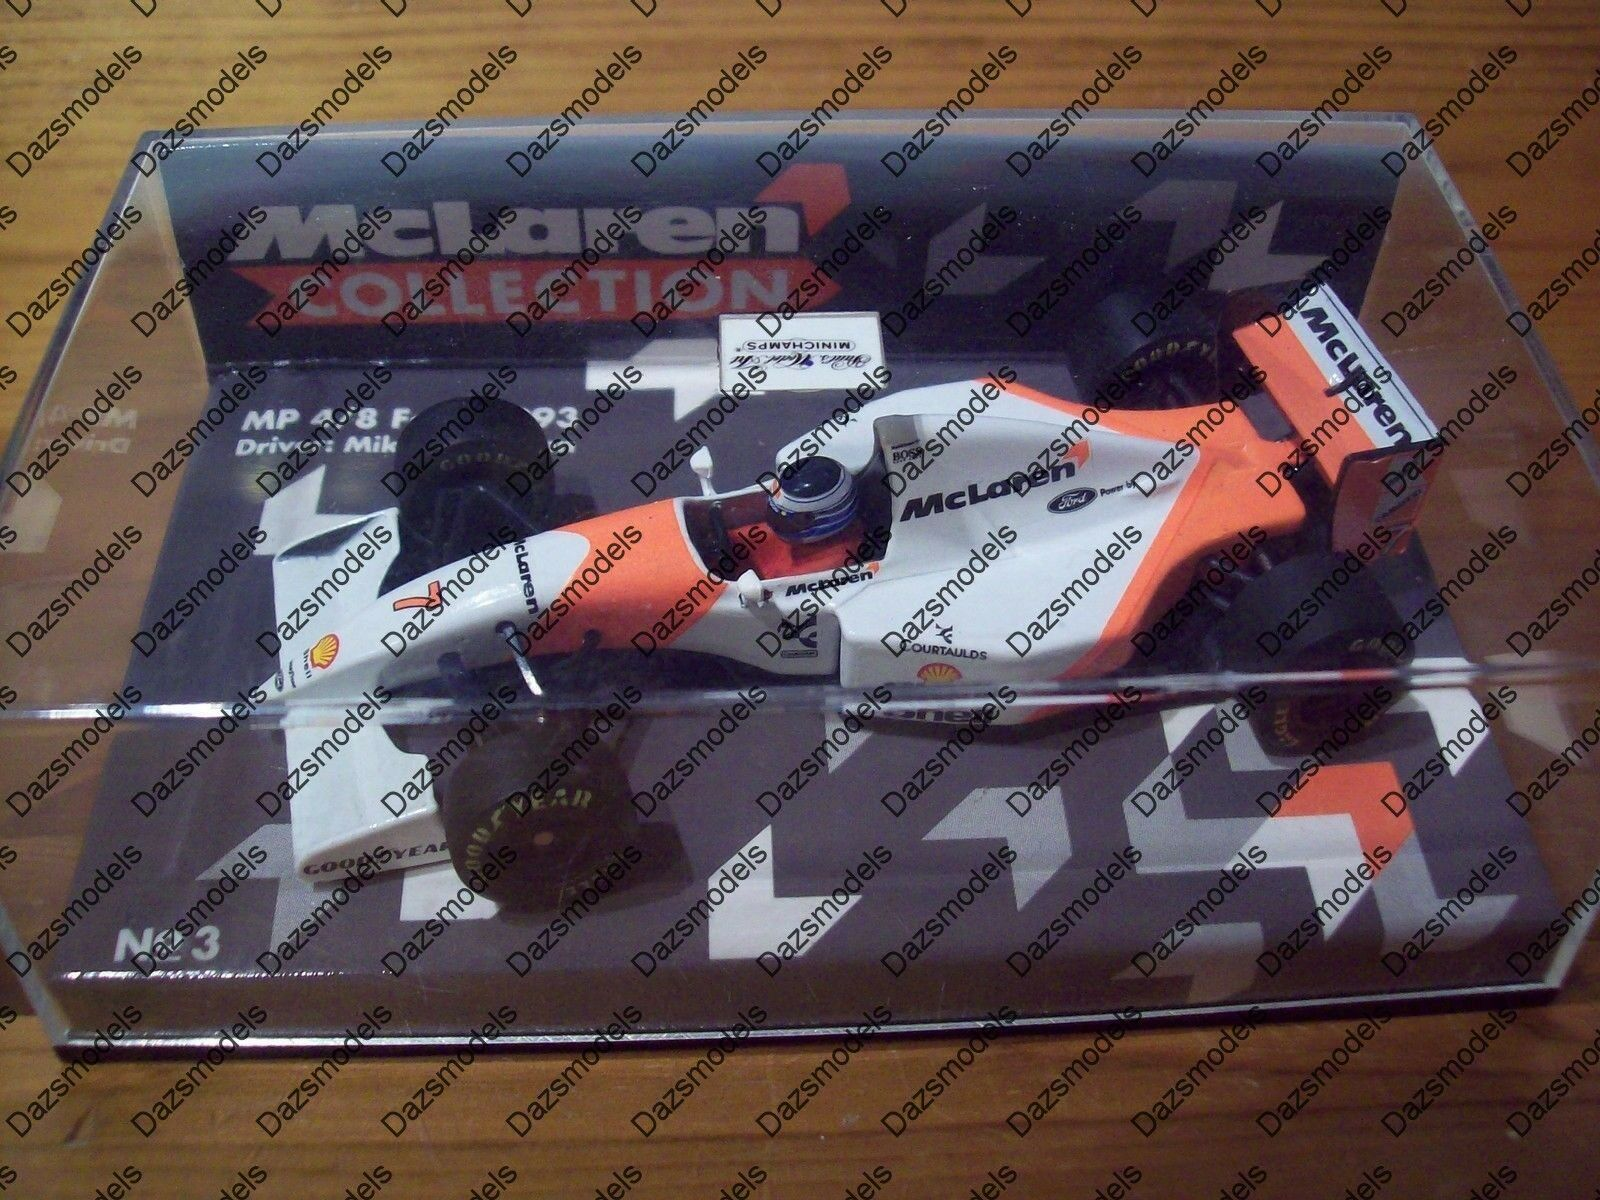 Minichamps F1 McLAREN FORD MP4 8 1993 M. Häkkinen 530 930017